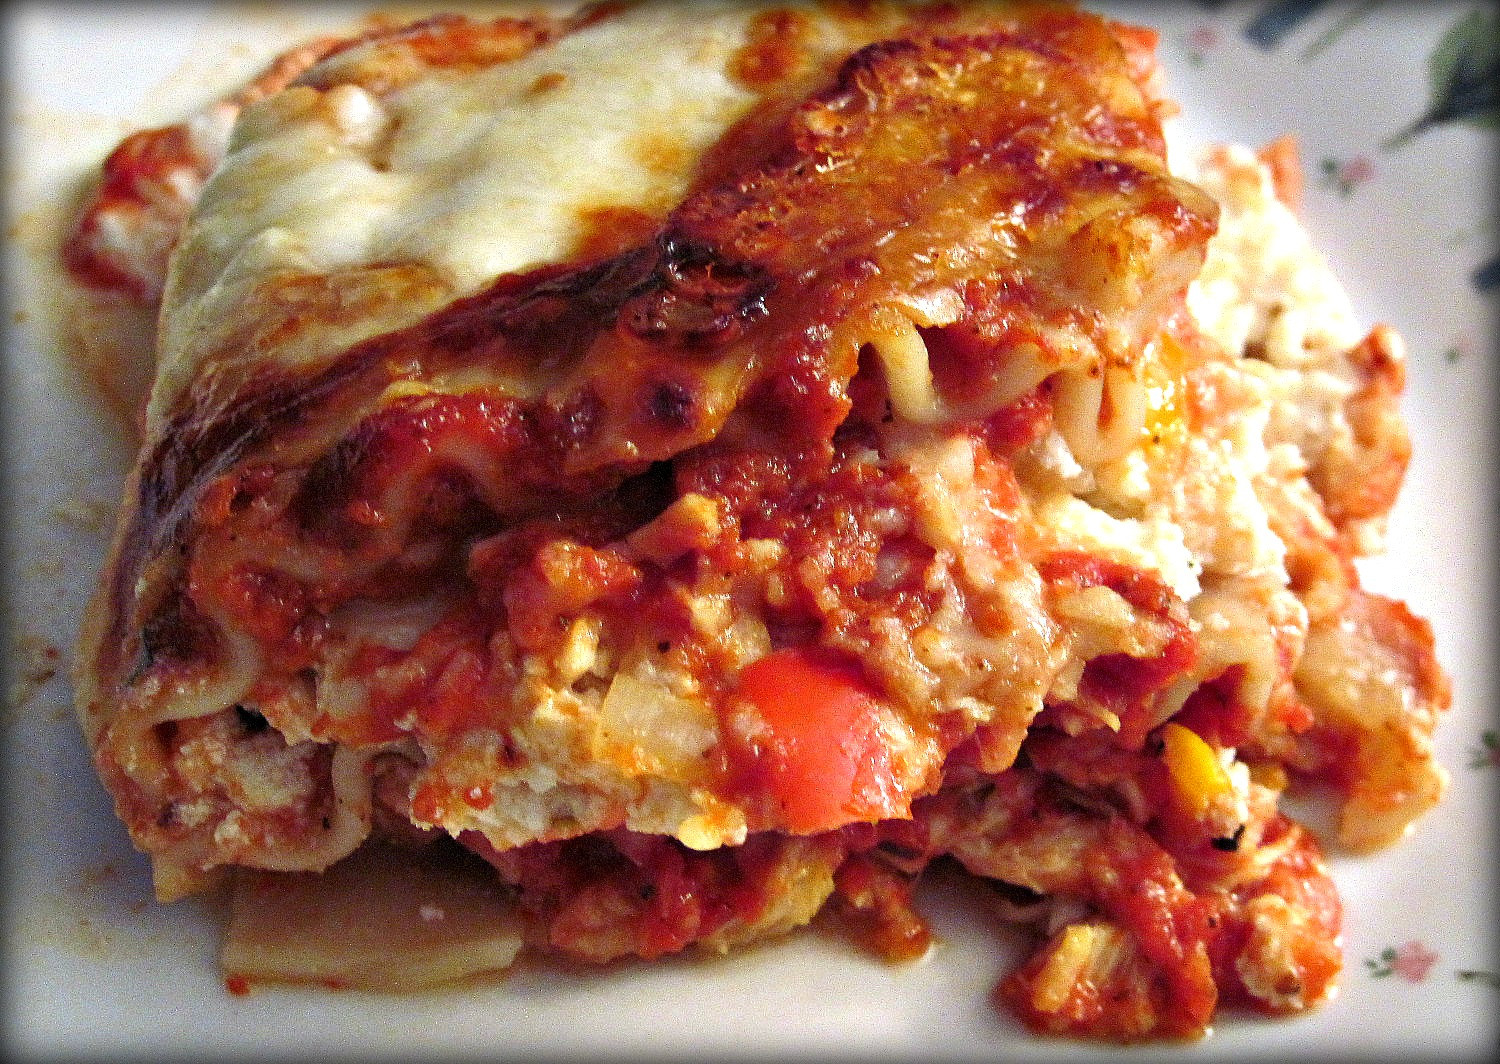 Aubrey's Recipes: Chicken and Roasted Garlic Lasagna